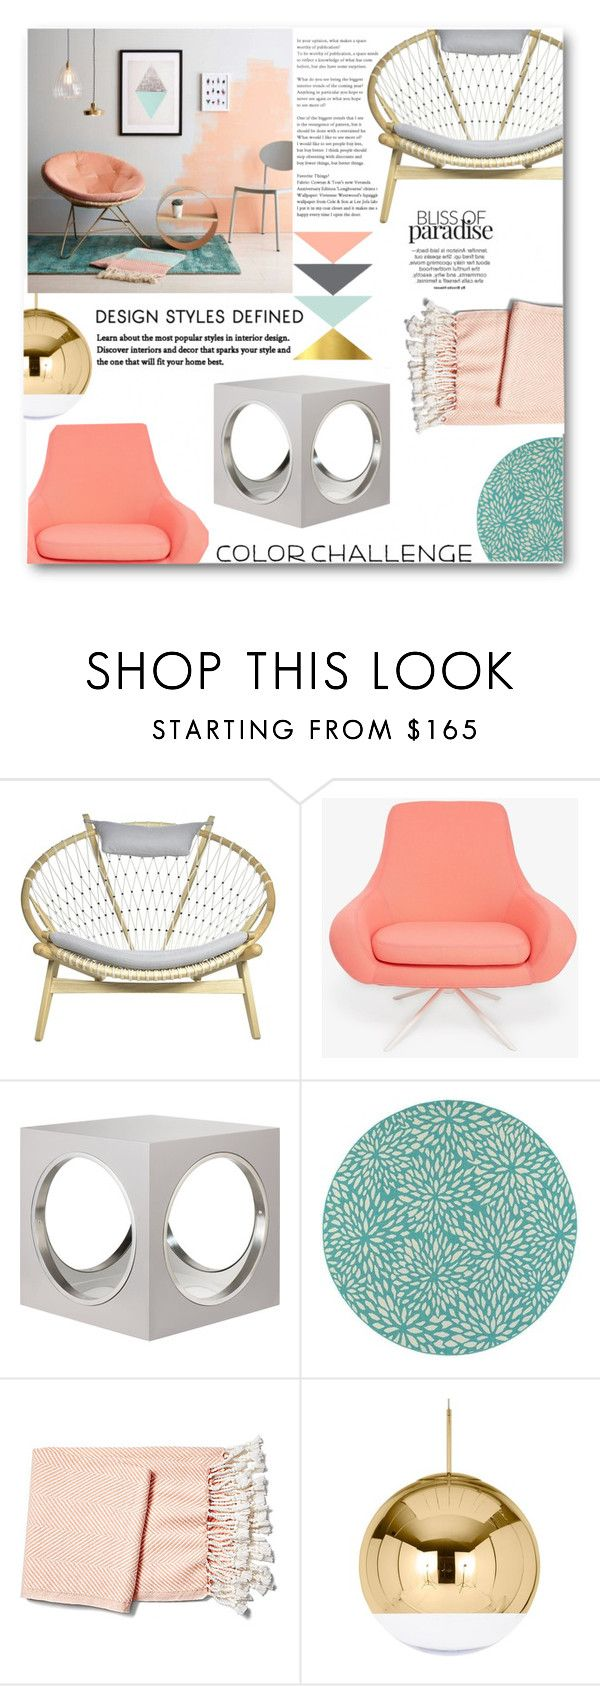 """""""Color Challenge:Gray & Peach"""" by elegal32 ❤ liked on Polyvore featuring interior, interiors, interior design, home, home decor, interior decorating, Softline, The Lacquer Company, Home Decorators Collection and Brahms Mount"""